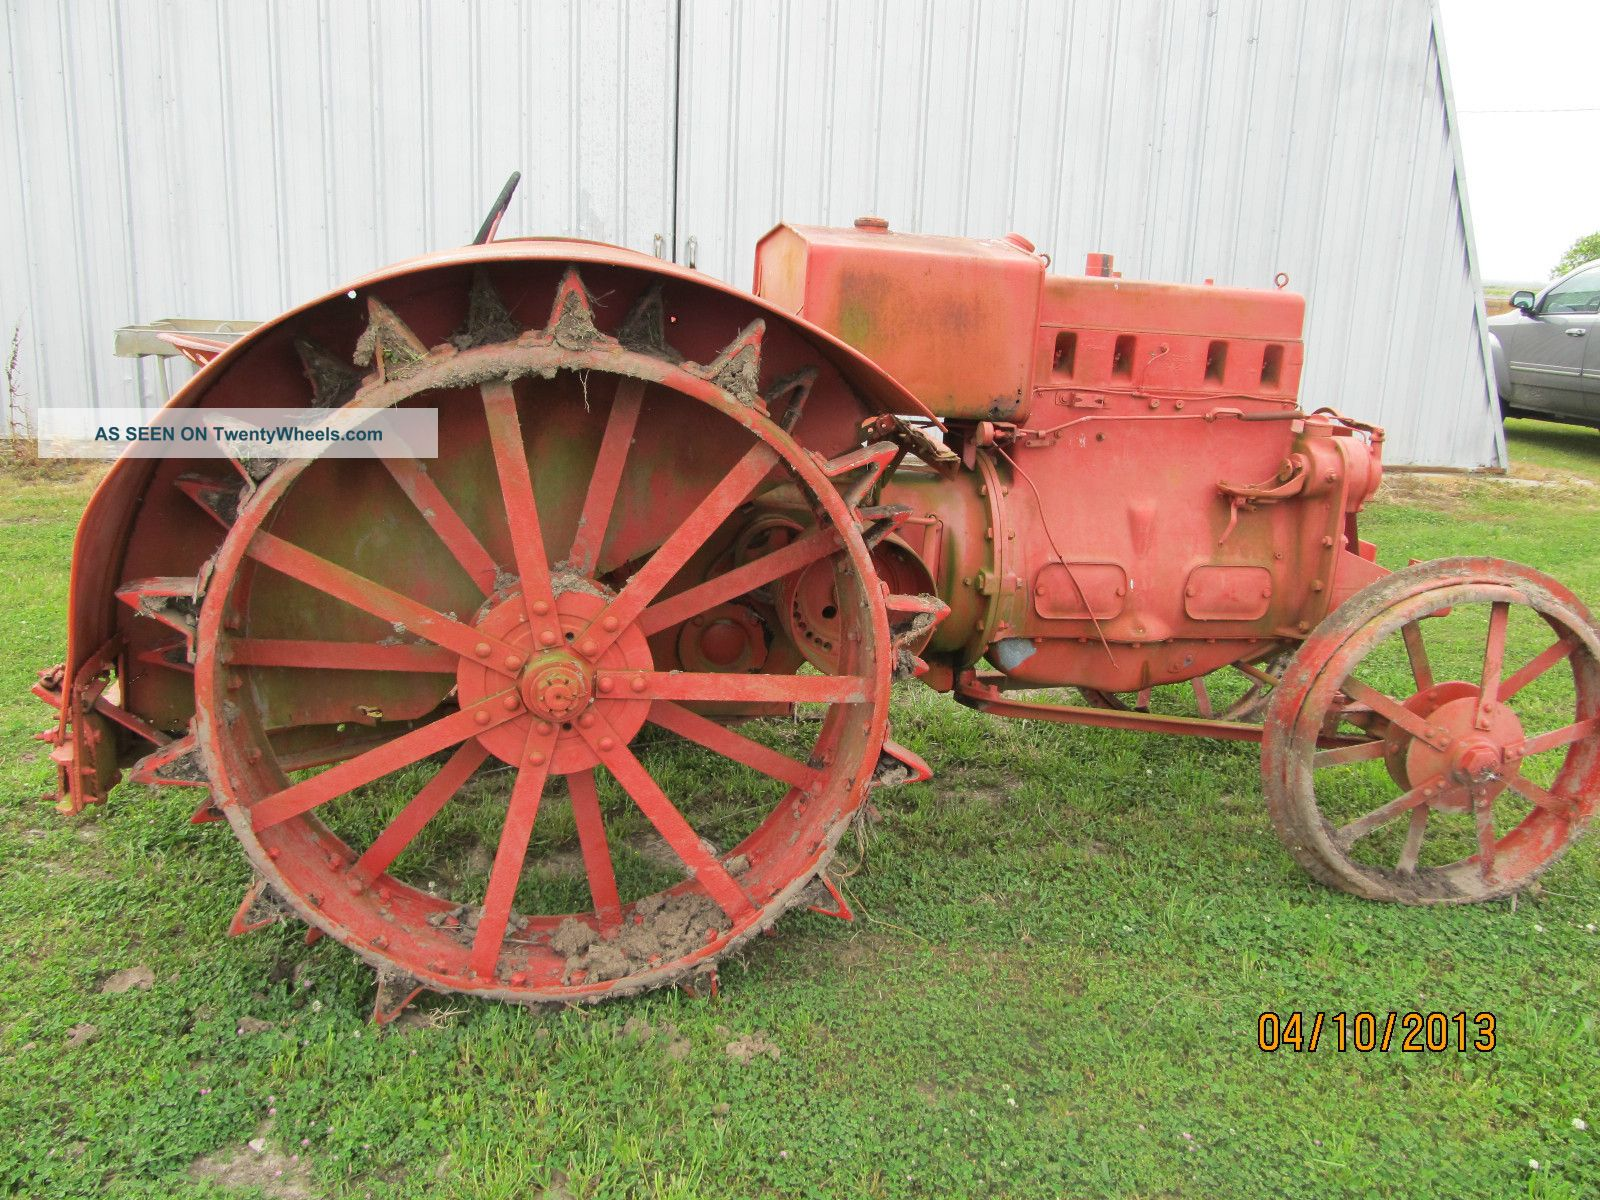 Case Model L Antique Tractor 1930 ' S Vintage Old Farm Equipment 1930 ' S Antique & Vintage Farm Equip photo